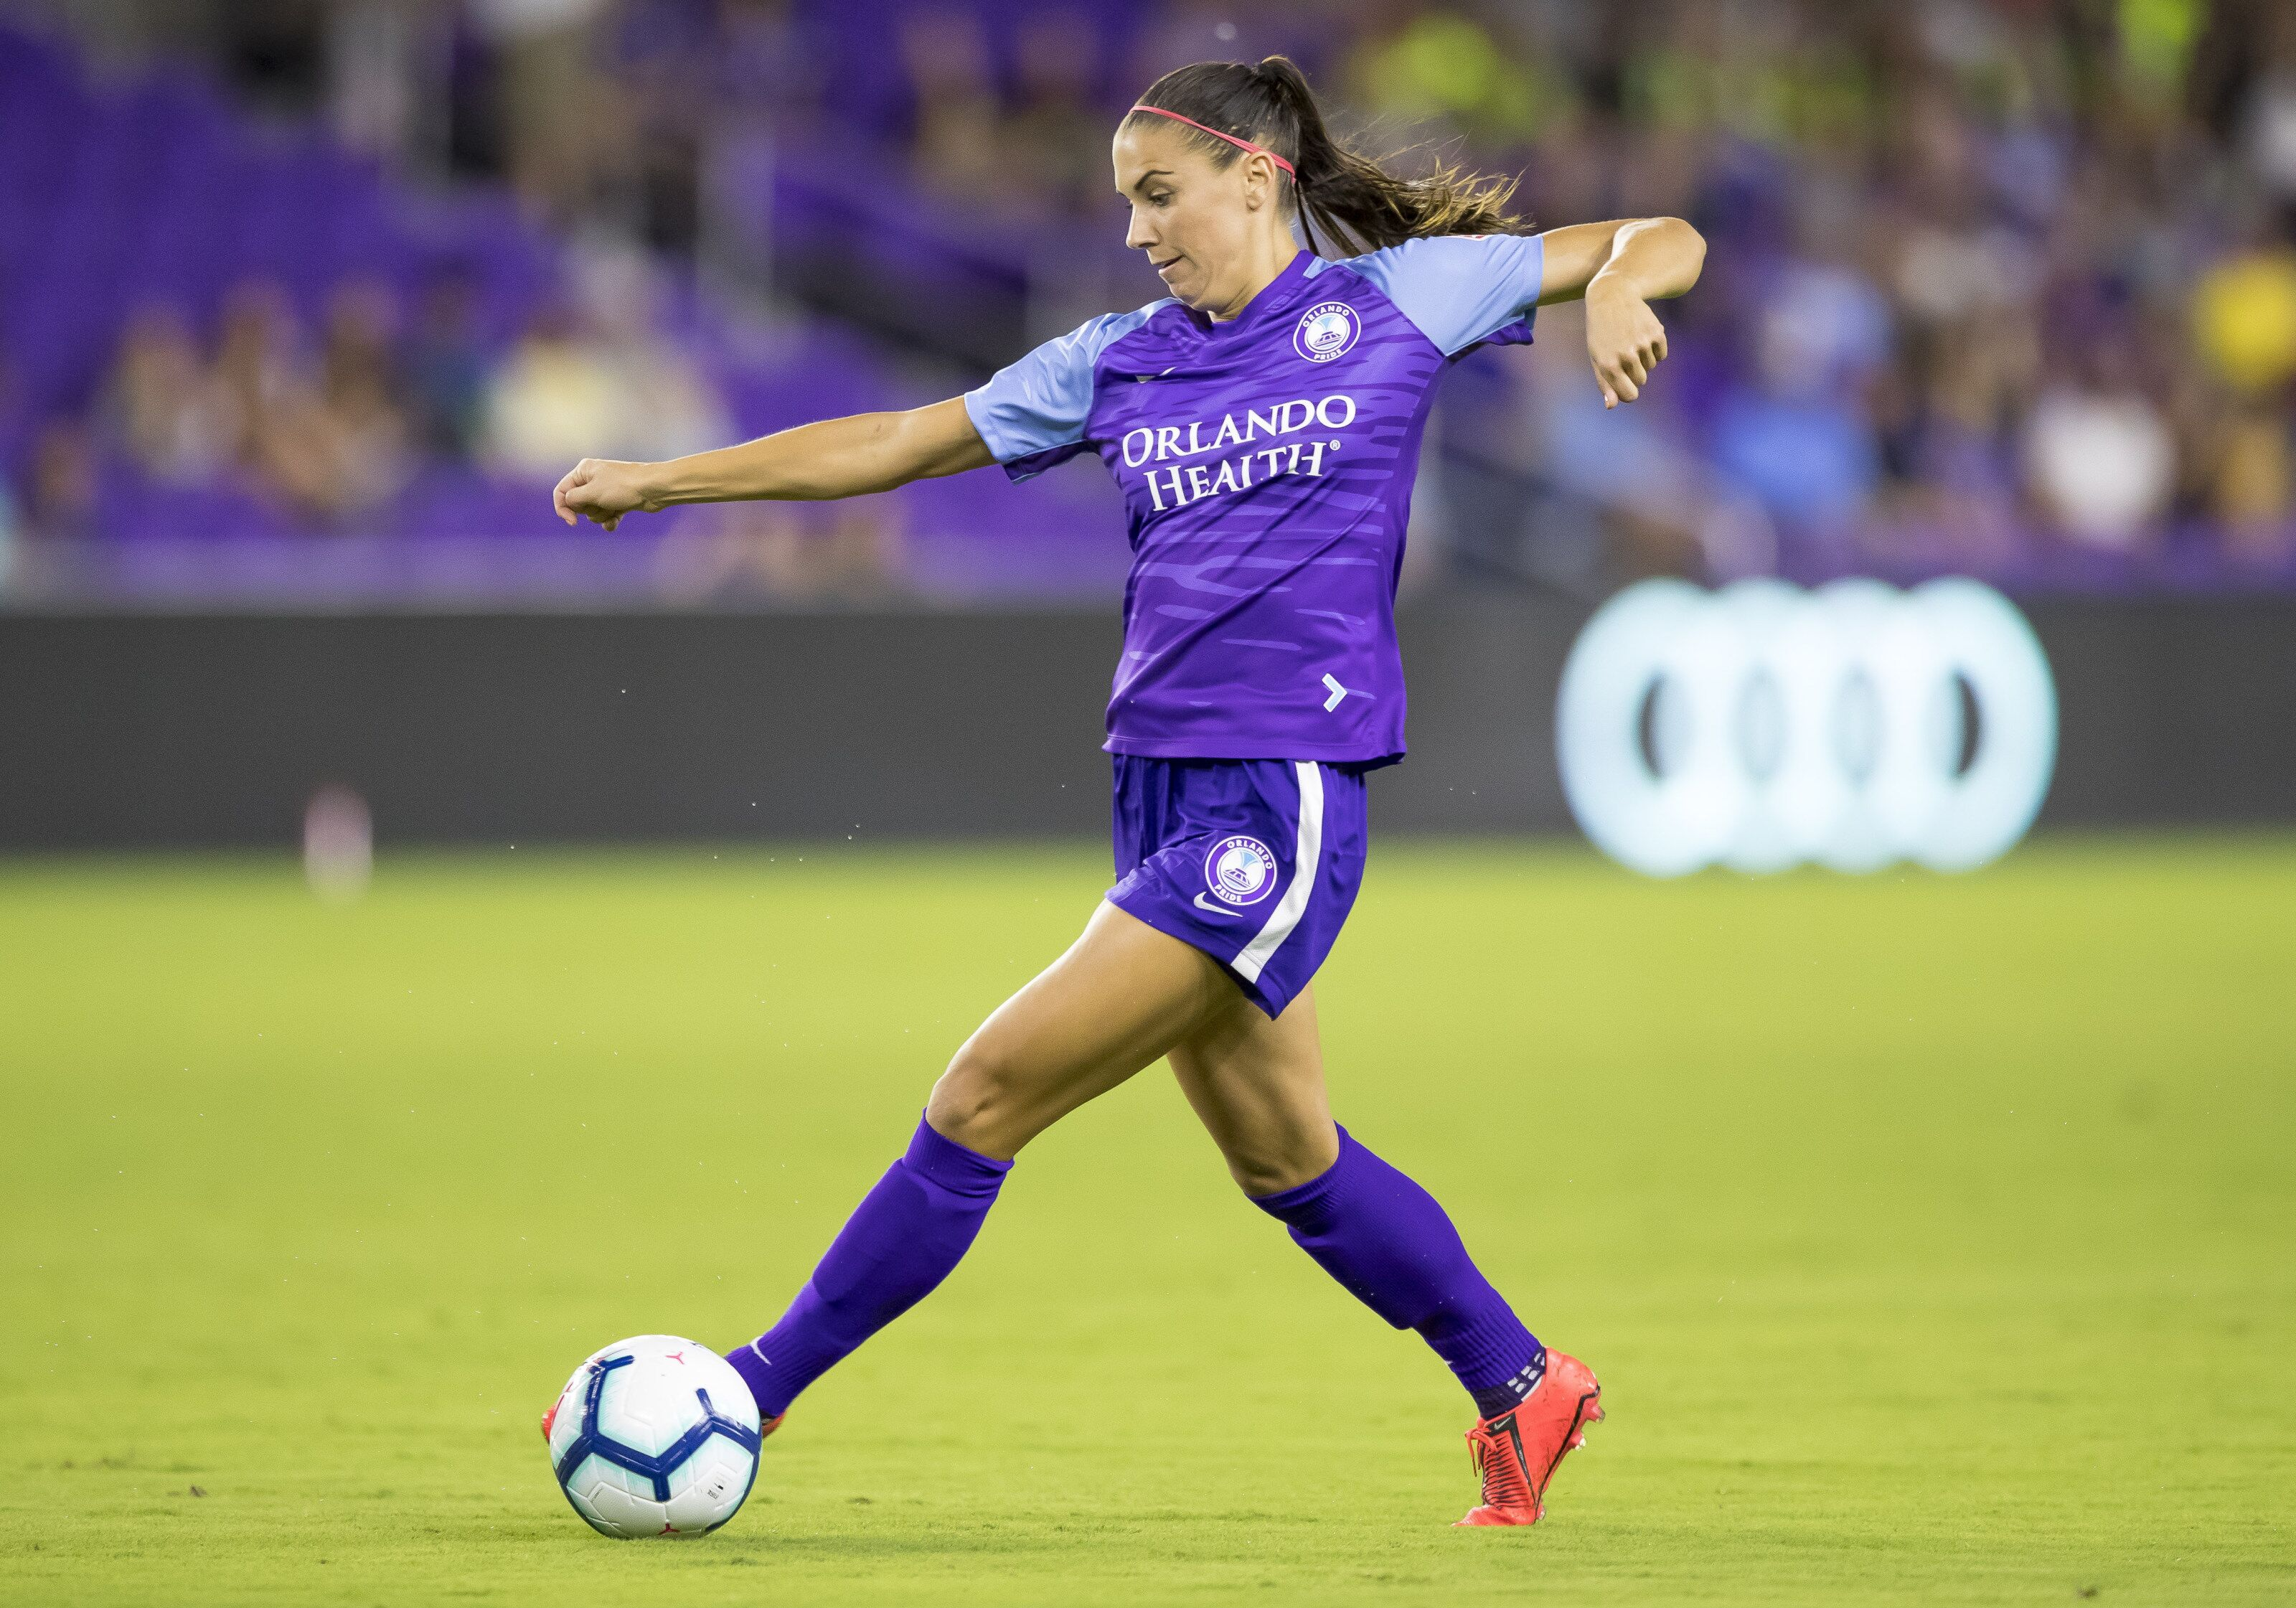 super popular 6417e 9cec7 Chicago Red Stars vs Orlando Pride: 3 things we learned ...